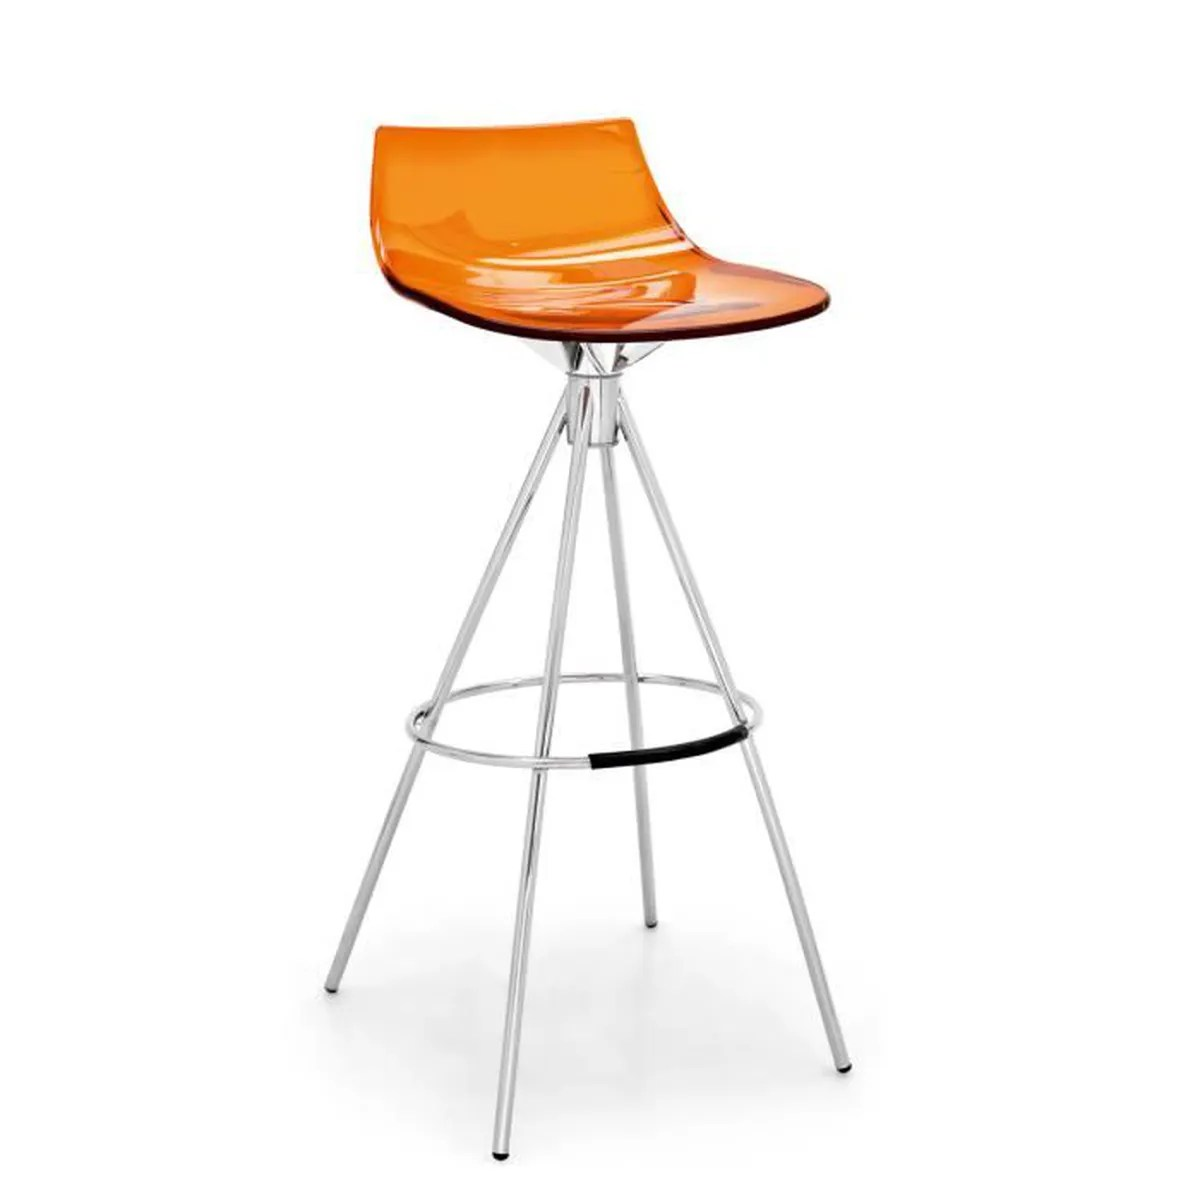 Tabouret Scandinave 65 Cm Tabouret De Bar Led Orange Assise 65 Cm Métal Orange Achat